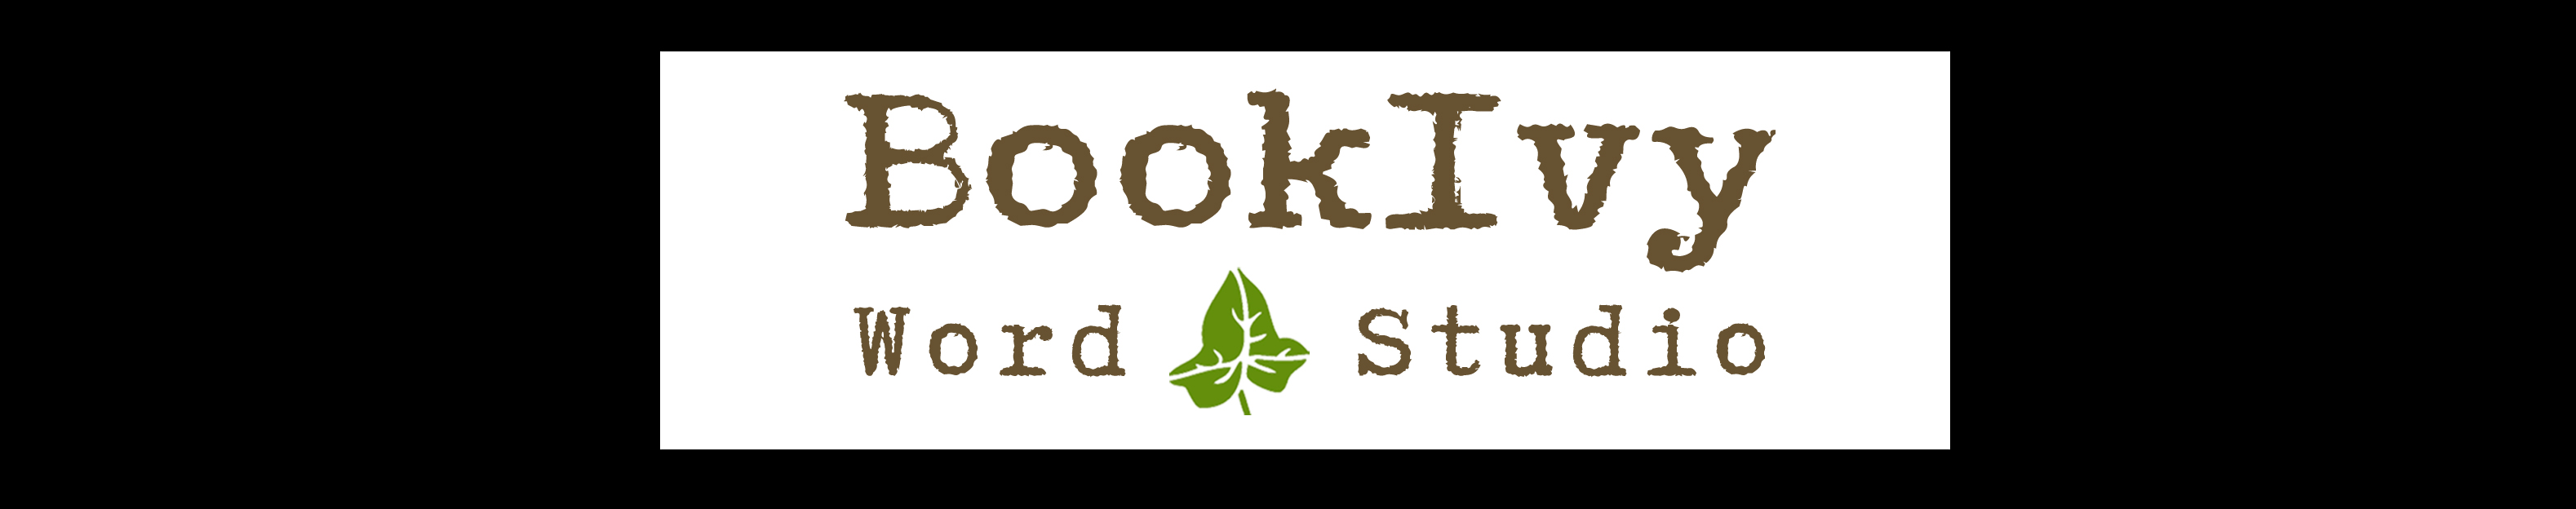 BookIvy Word Studio